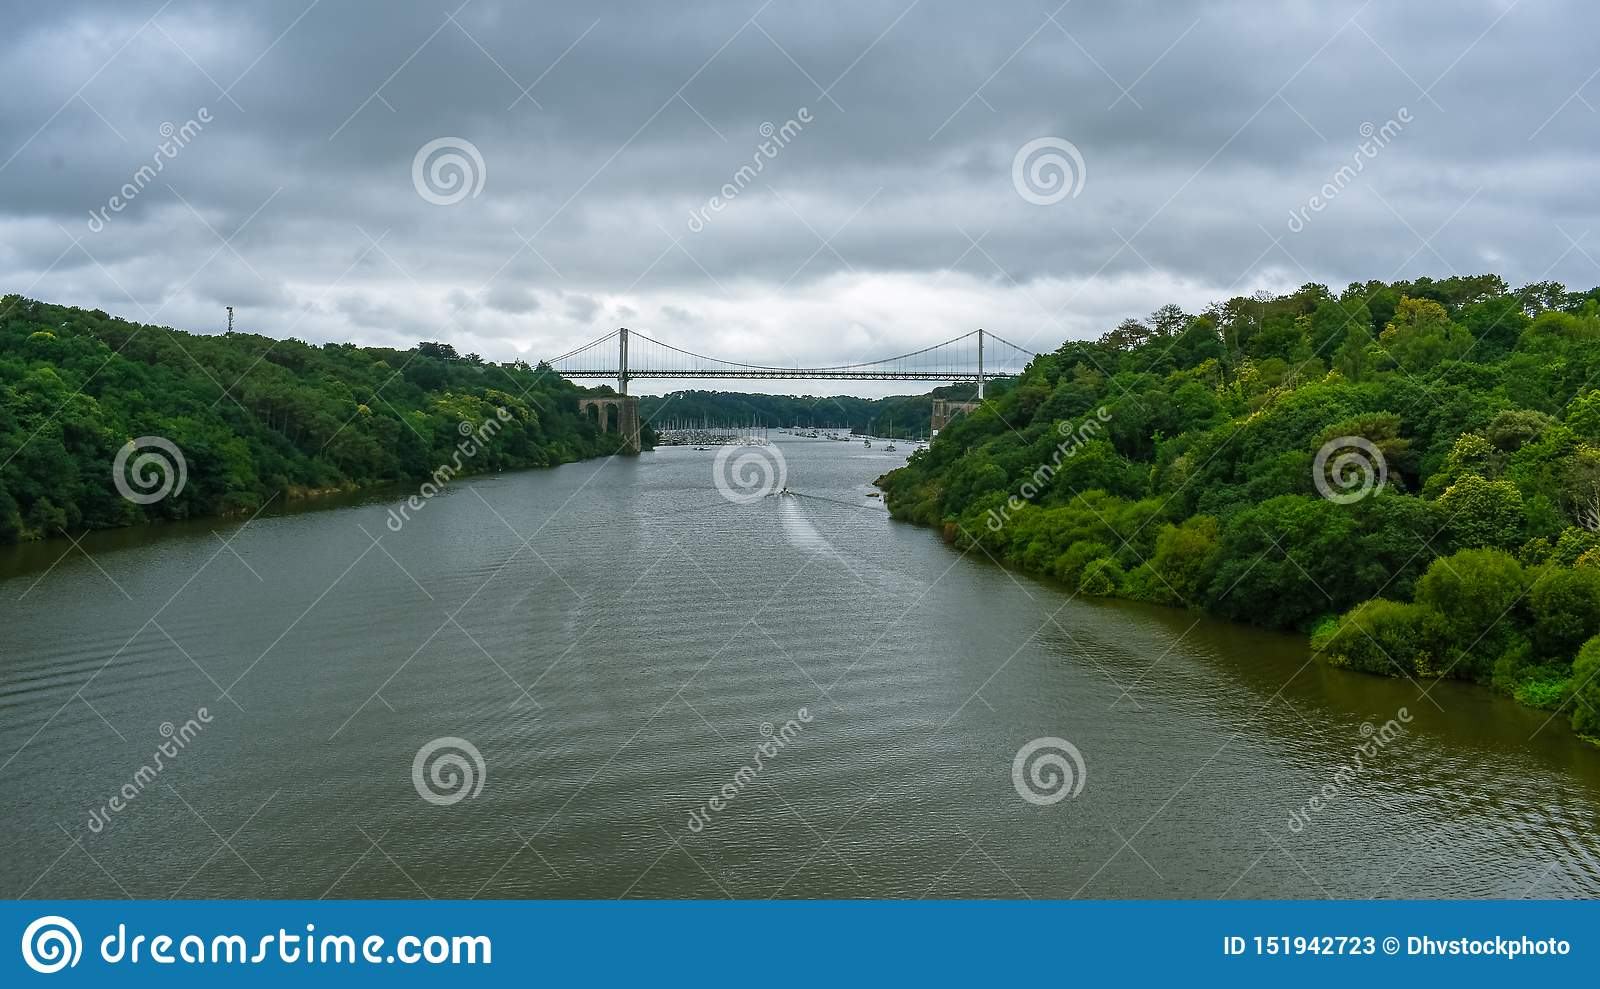 Cable-stayed bridge in a green natural forest, with a dramatic cloudy sky. Motorboat sailing on the river